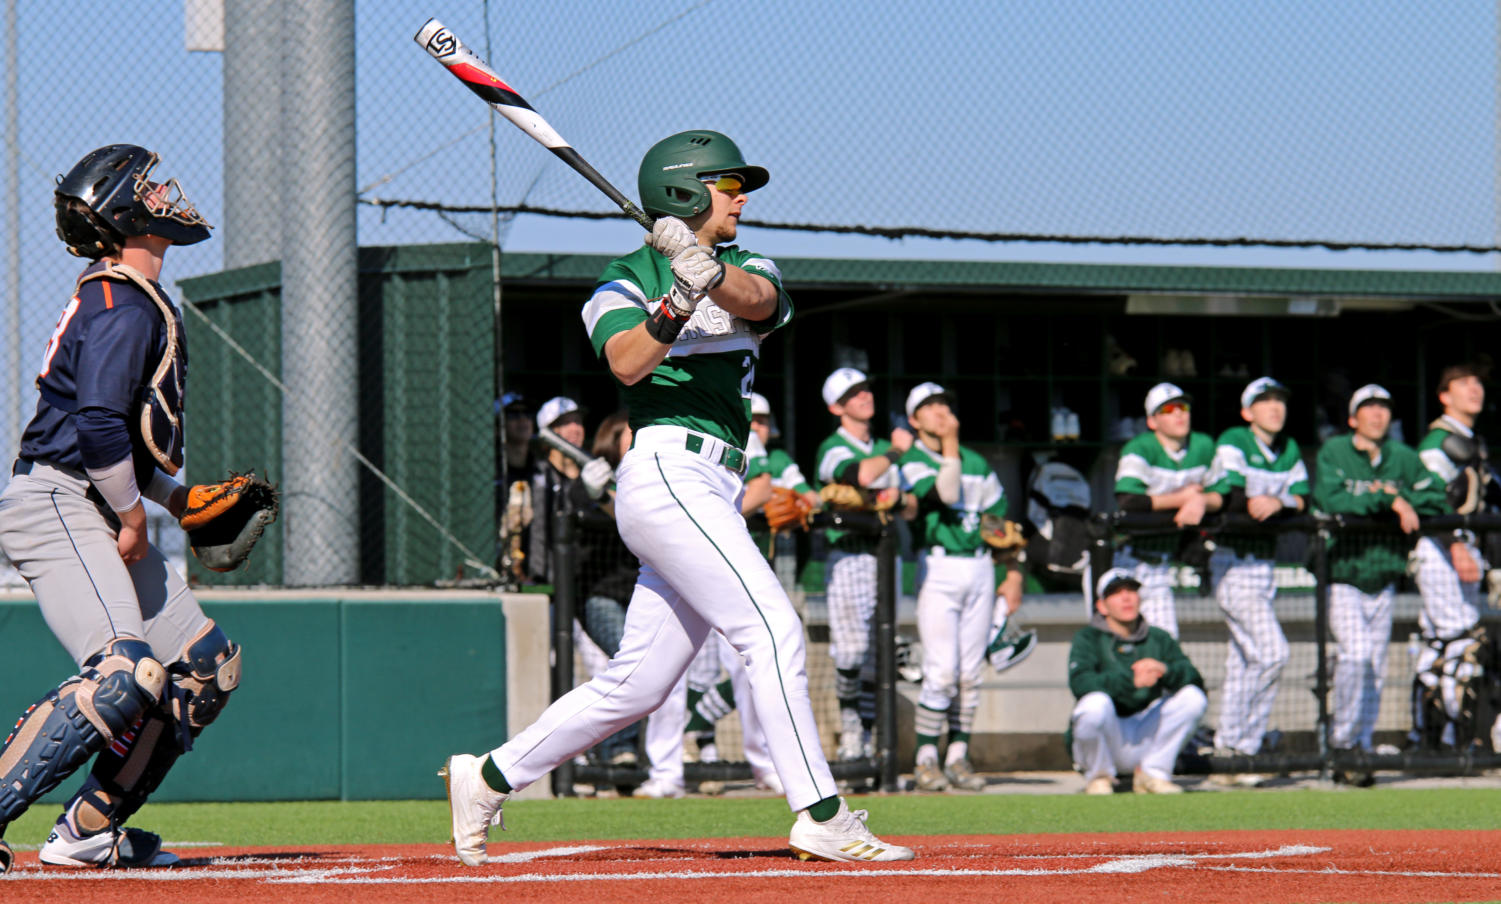 Senior Kendall Foster takes an at-bat during a game against Sachse.